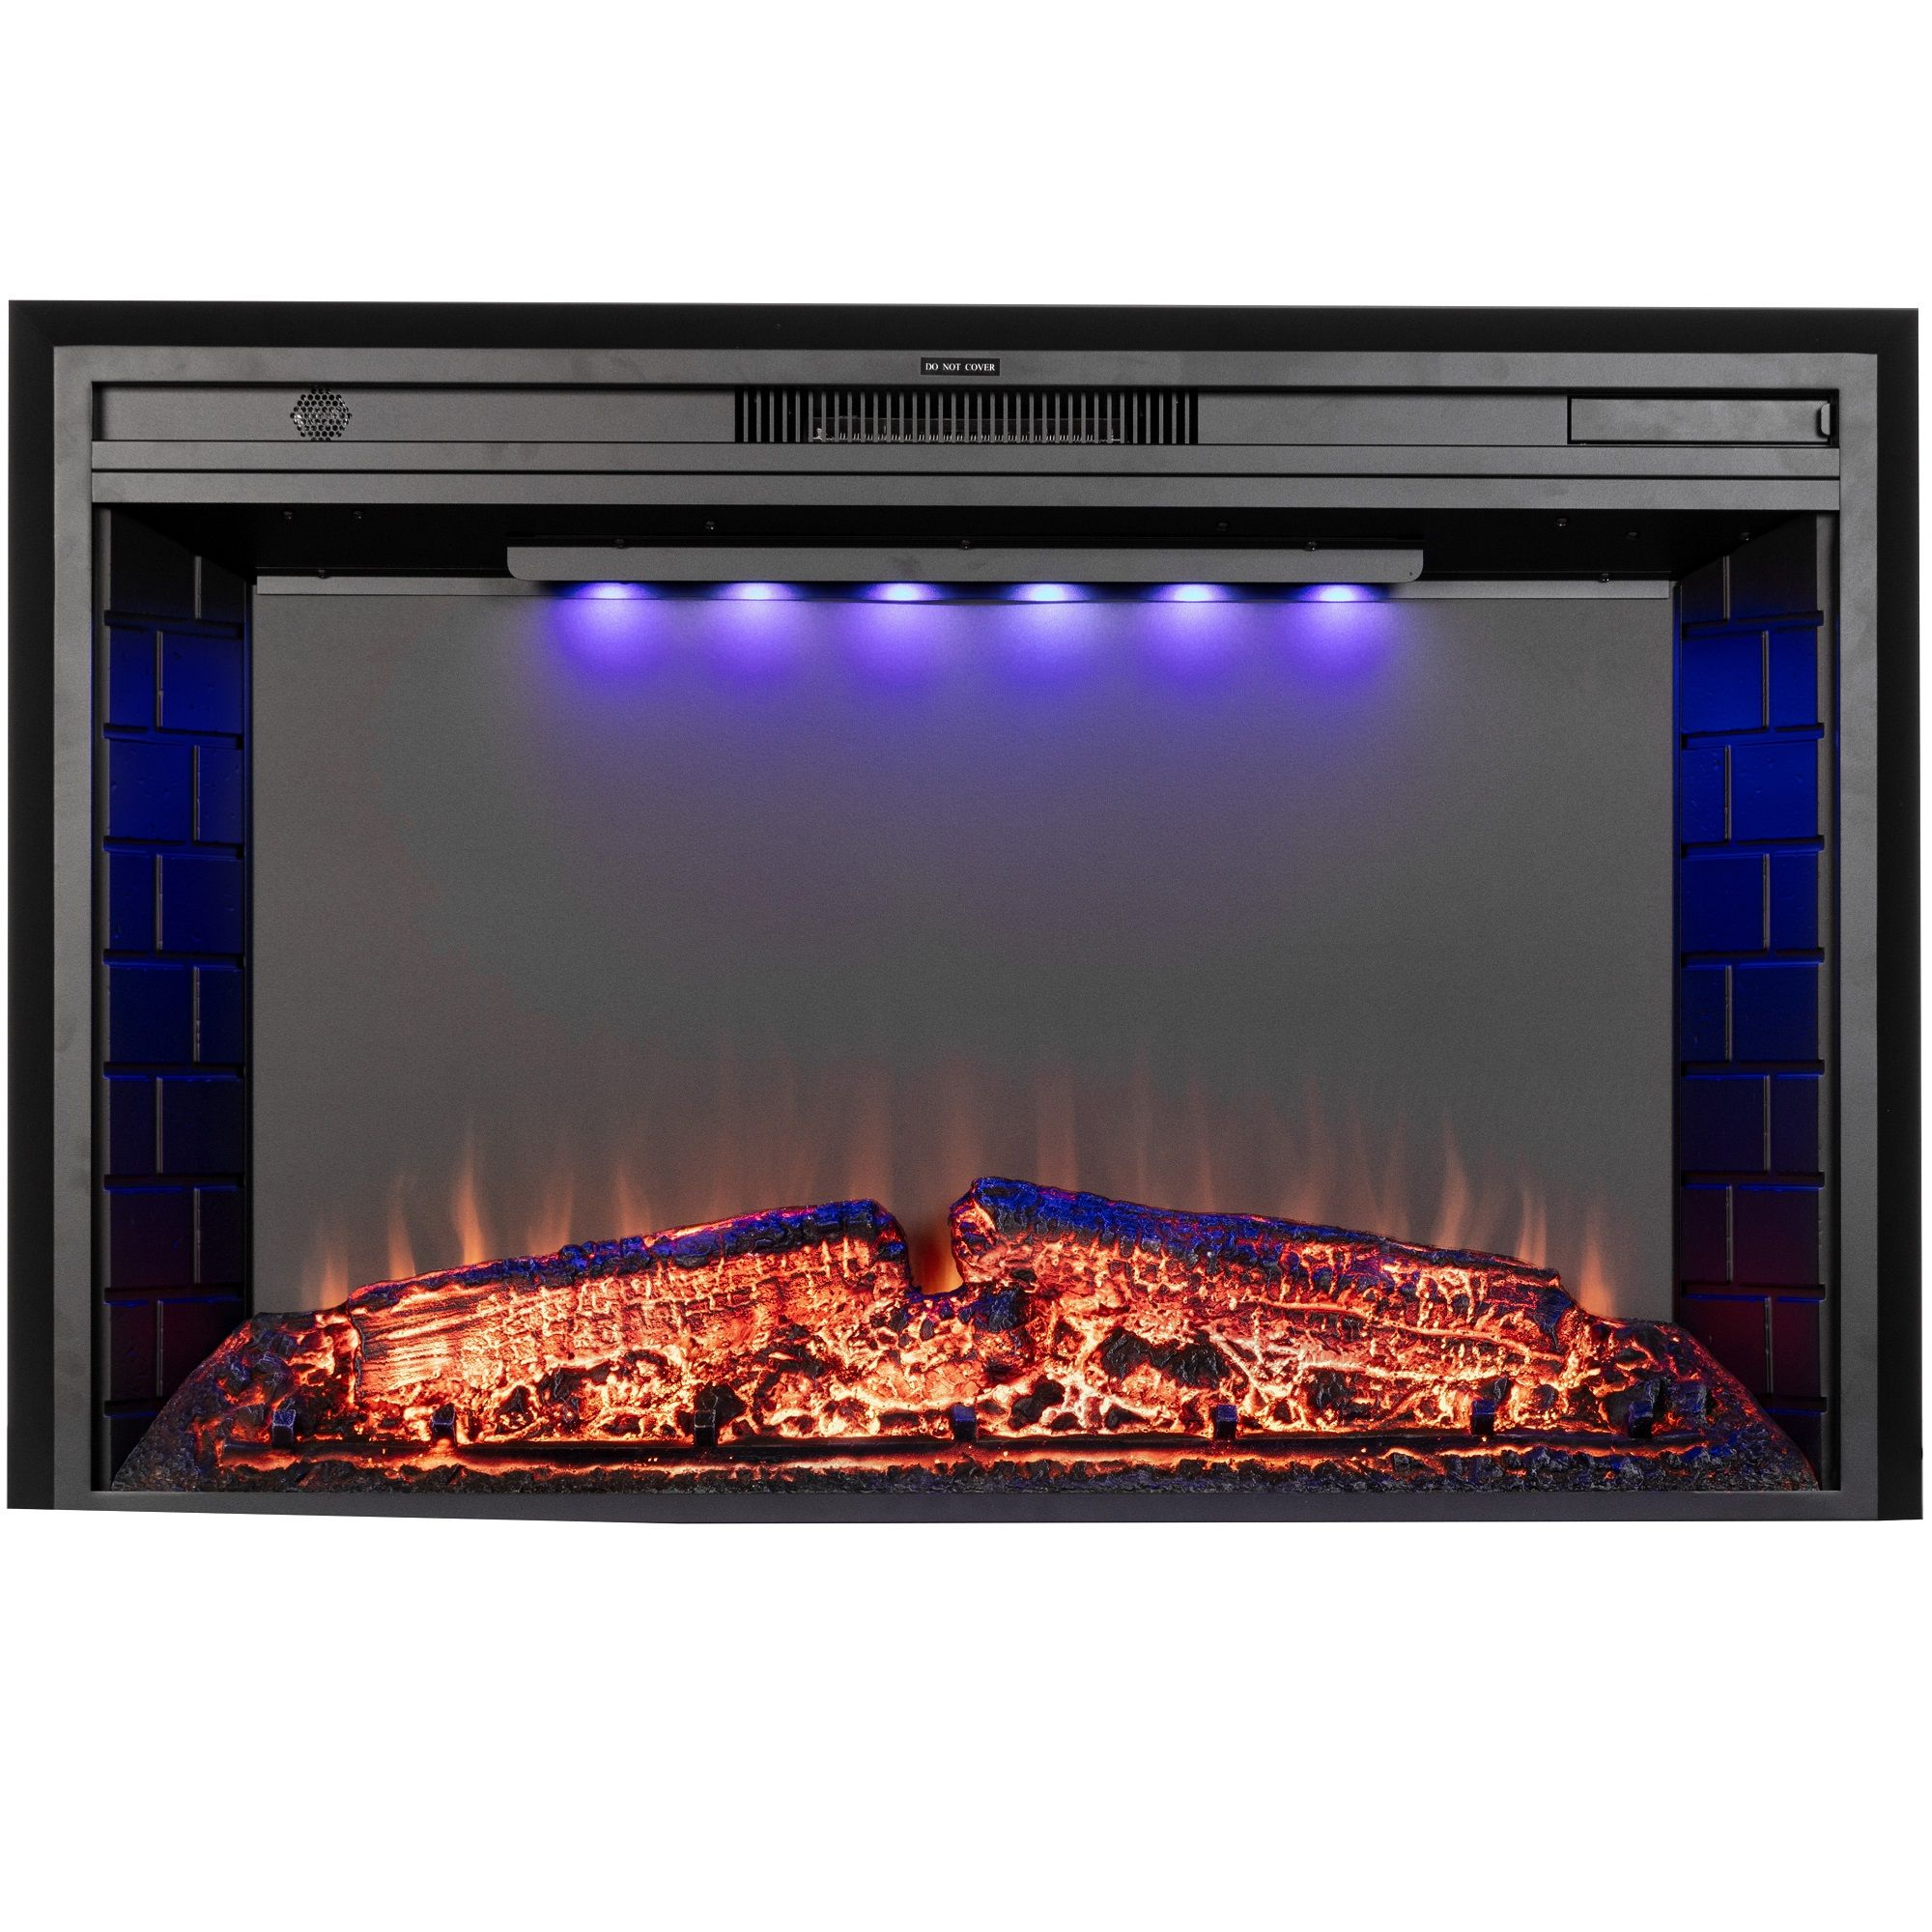 Hunt Electric Fireplace Insert In 2020 Electric Fireplace Insert Fireplace Inserts Electric Fireplace